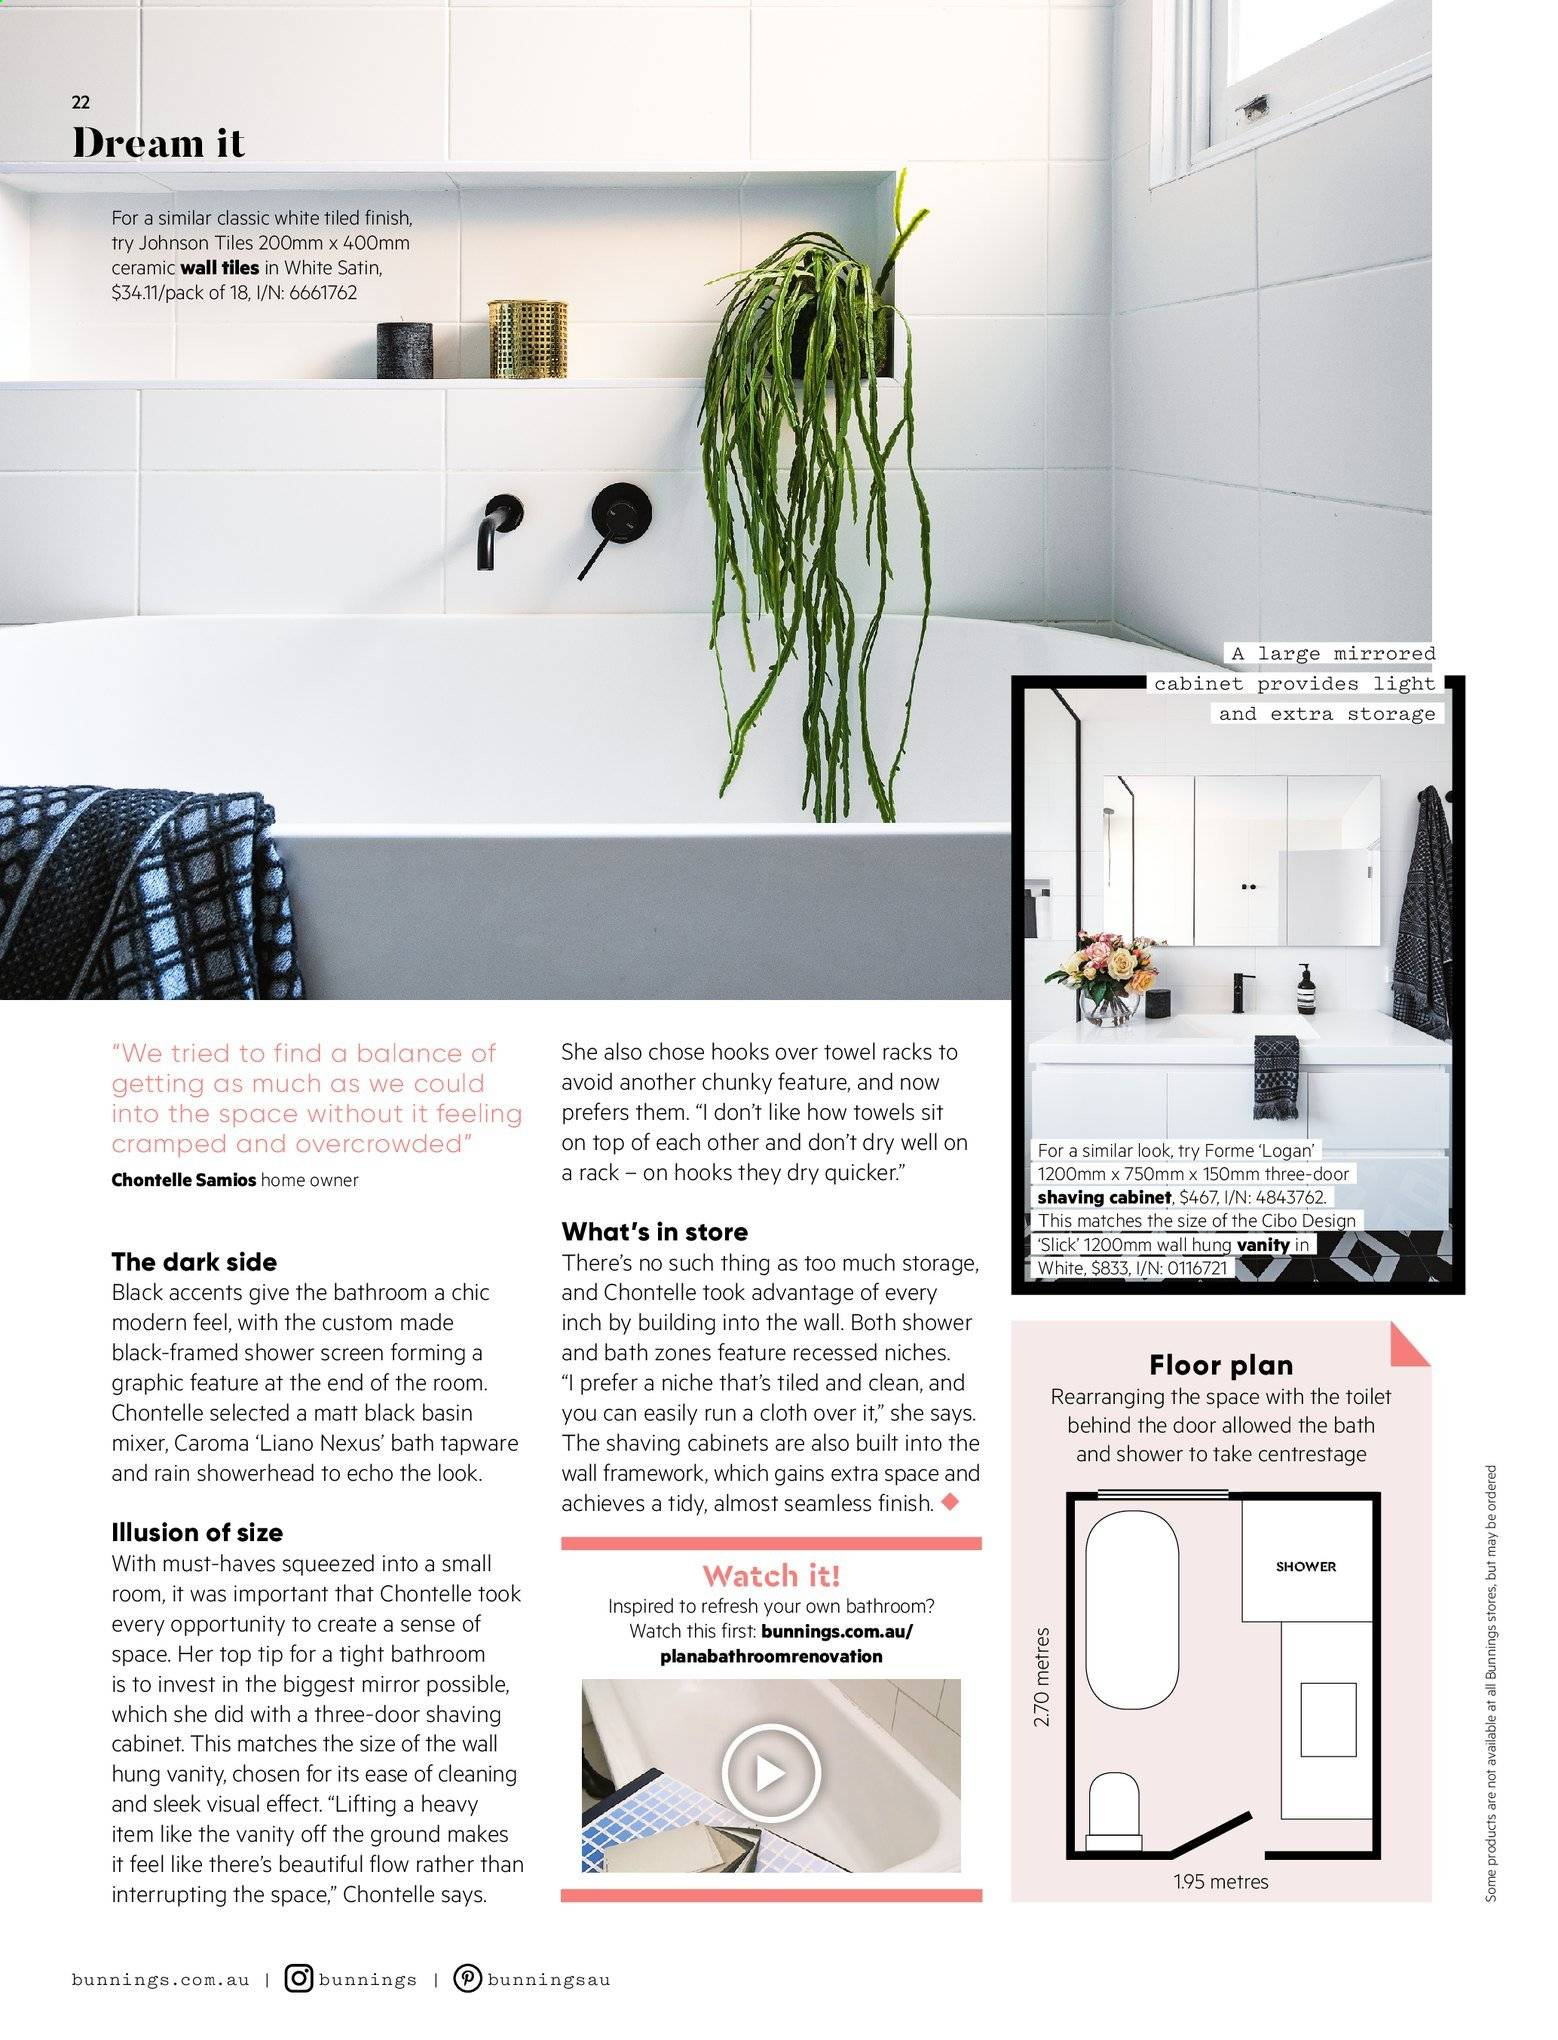 Picture of: Bunnings Warehouse Catalogue 1 9 2019 30 9 2019 Page 22 Au Catalogues